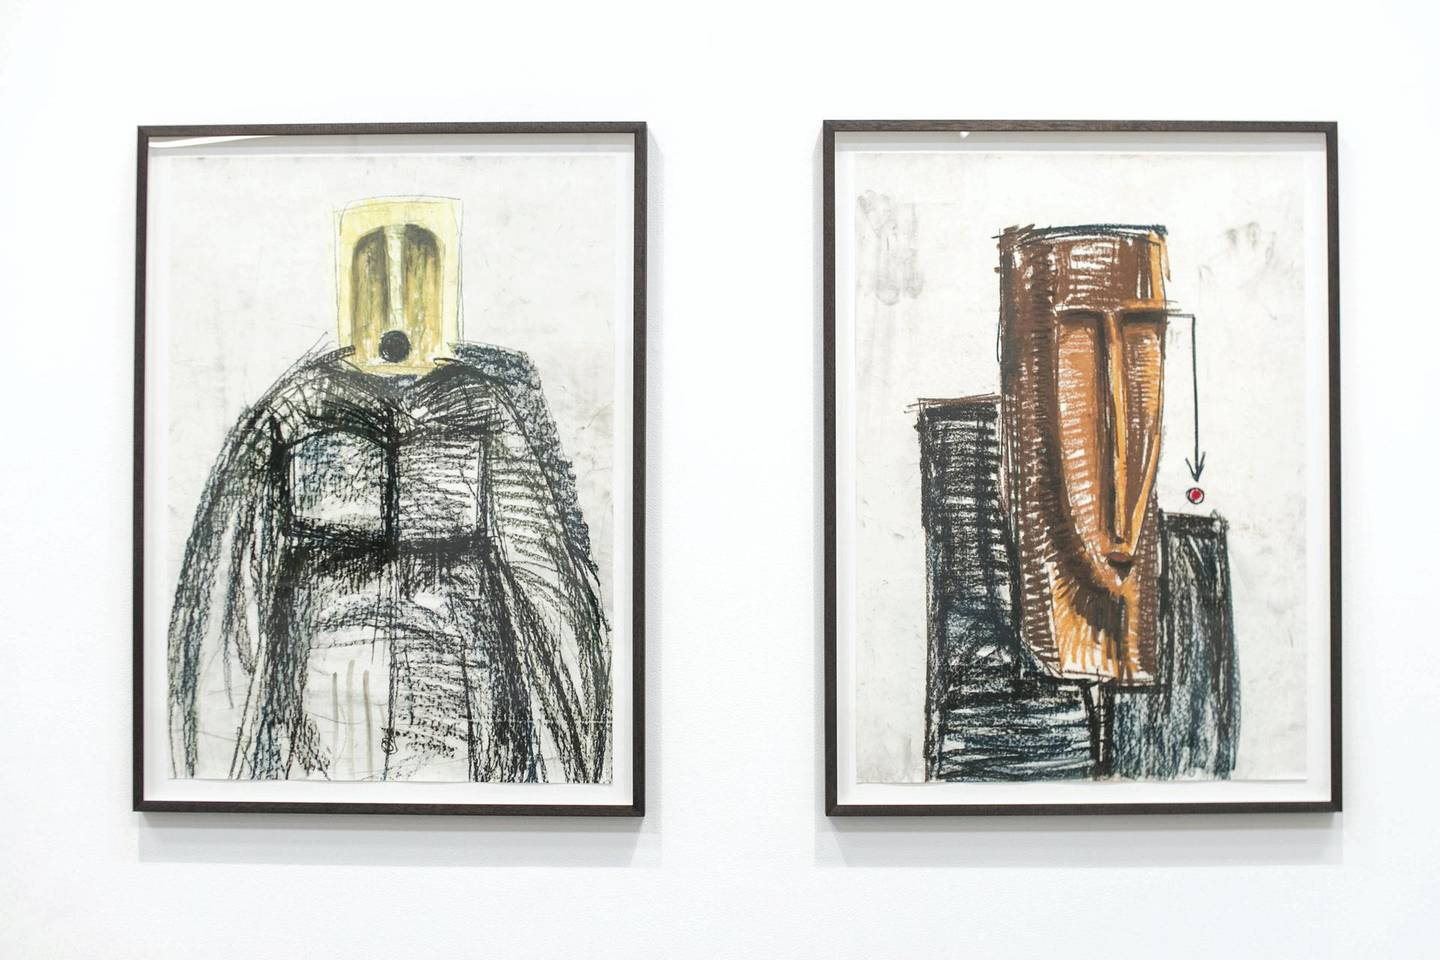 DUBAI, UNITED ARAB EMIRATES - Jan 24, 2018. Artworks by Ghanaian artist Serge Attukwei Clottey, at Lawrie Shabibi in Alserkal Avenue.Serge Attukwei Clottey shows a new series of pastel drawings on paper, depicting disjointed figures and faces - not unlike the visions of nude women under Cubism, a European movement which drew heavily from traditional African tribal sculpture. Introducing colour, the pieces mark a departure from Clottey's previous charcoal works. Also on display are Clottey's wall-based sculptures created from yellow gallon containers - bold assemblages that act as a means of inquiry into the languages of form and abstraction. Alongside these sculptures and drawings, Clottey presents a video installation, 'The Displaced', enacting the trade and migration story of the Clottey family; together with his performance collective GoLokal, Clottey embarks on a symbolic journey of remembrance on Labadi Beach, Accra.(Photo by Reem Mohammed/The National)Reporter: MelissaSection: AC